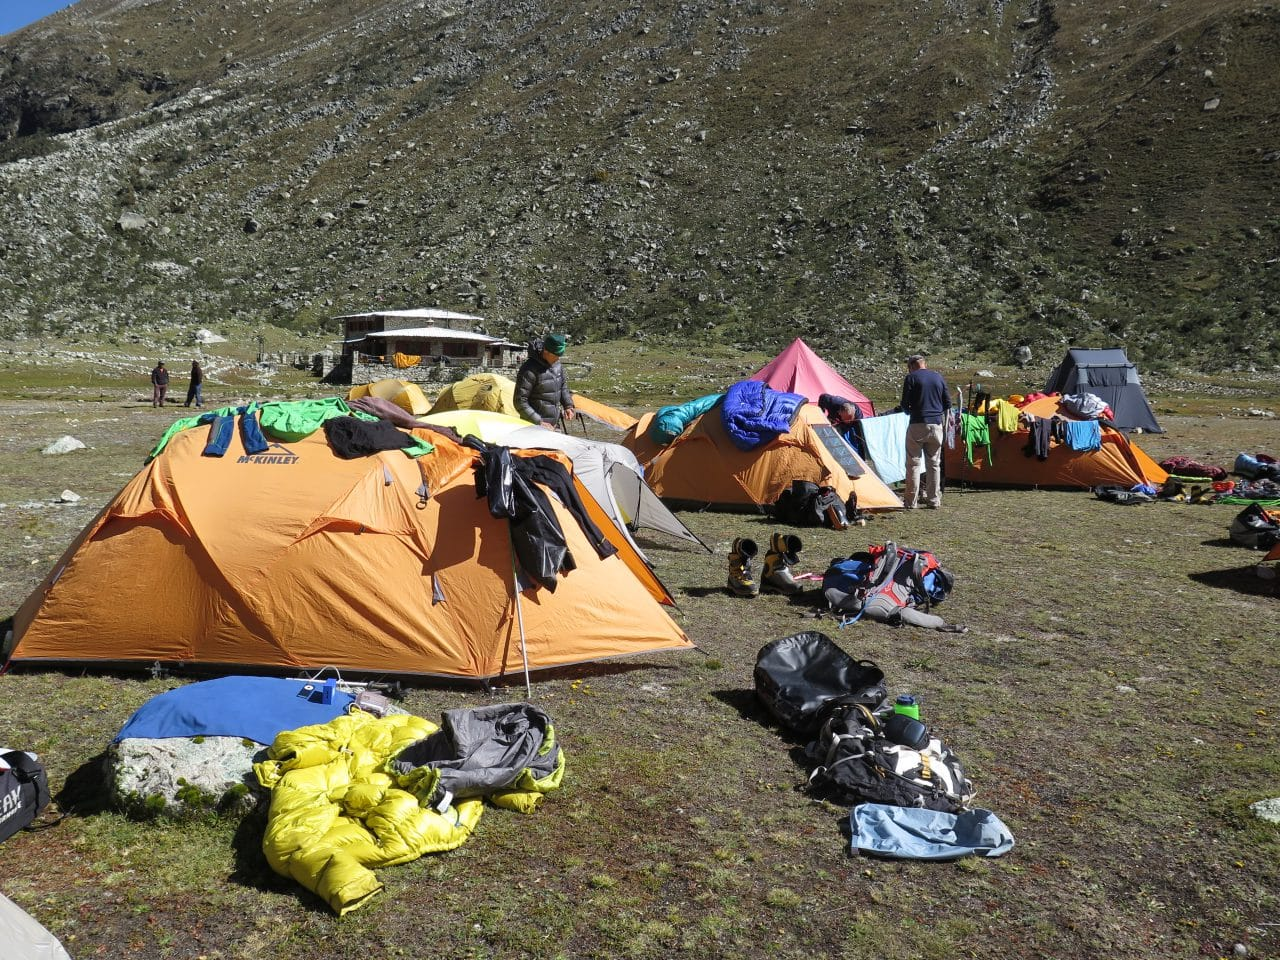 perou-helyum-guides-de-montagne-expedition-camp-de-base